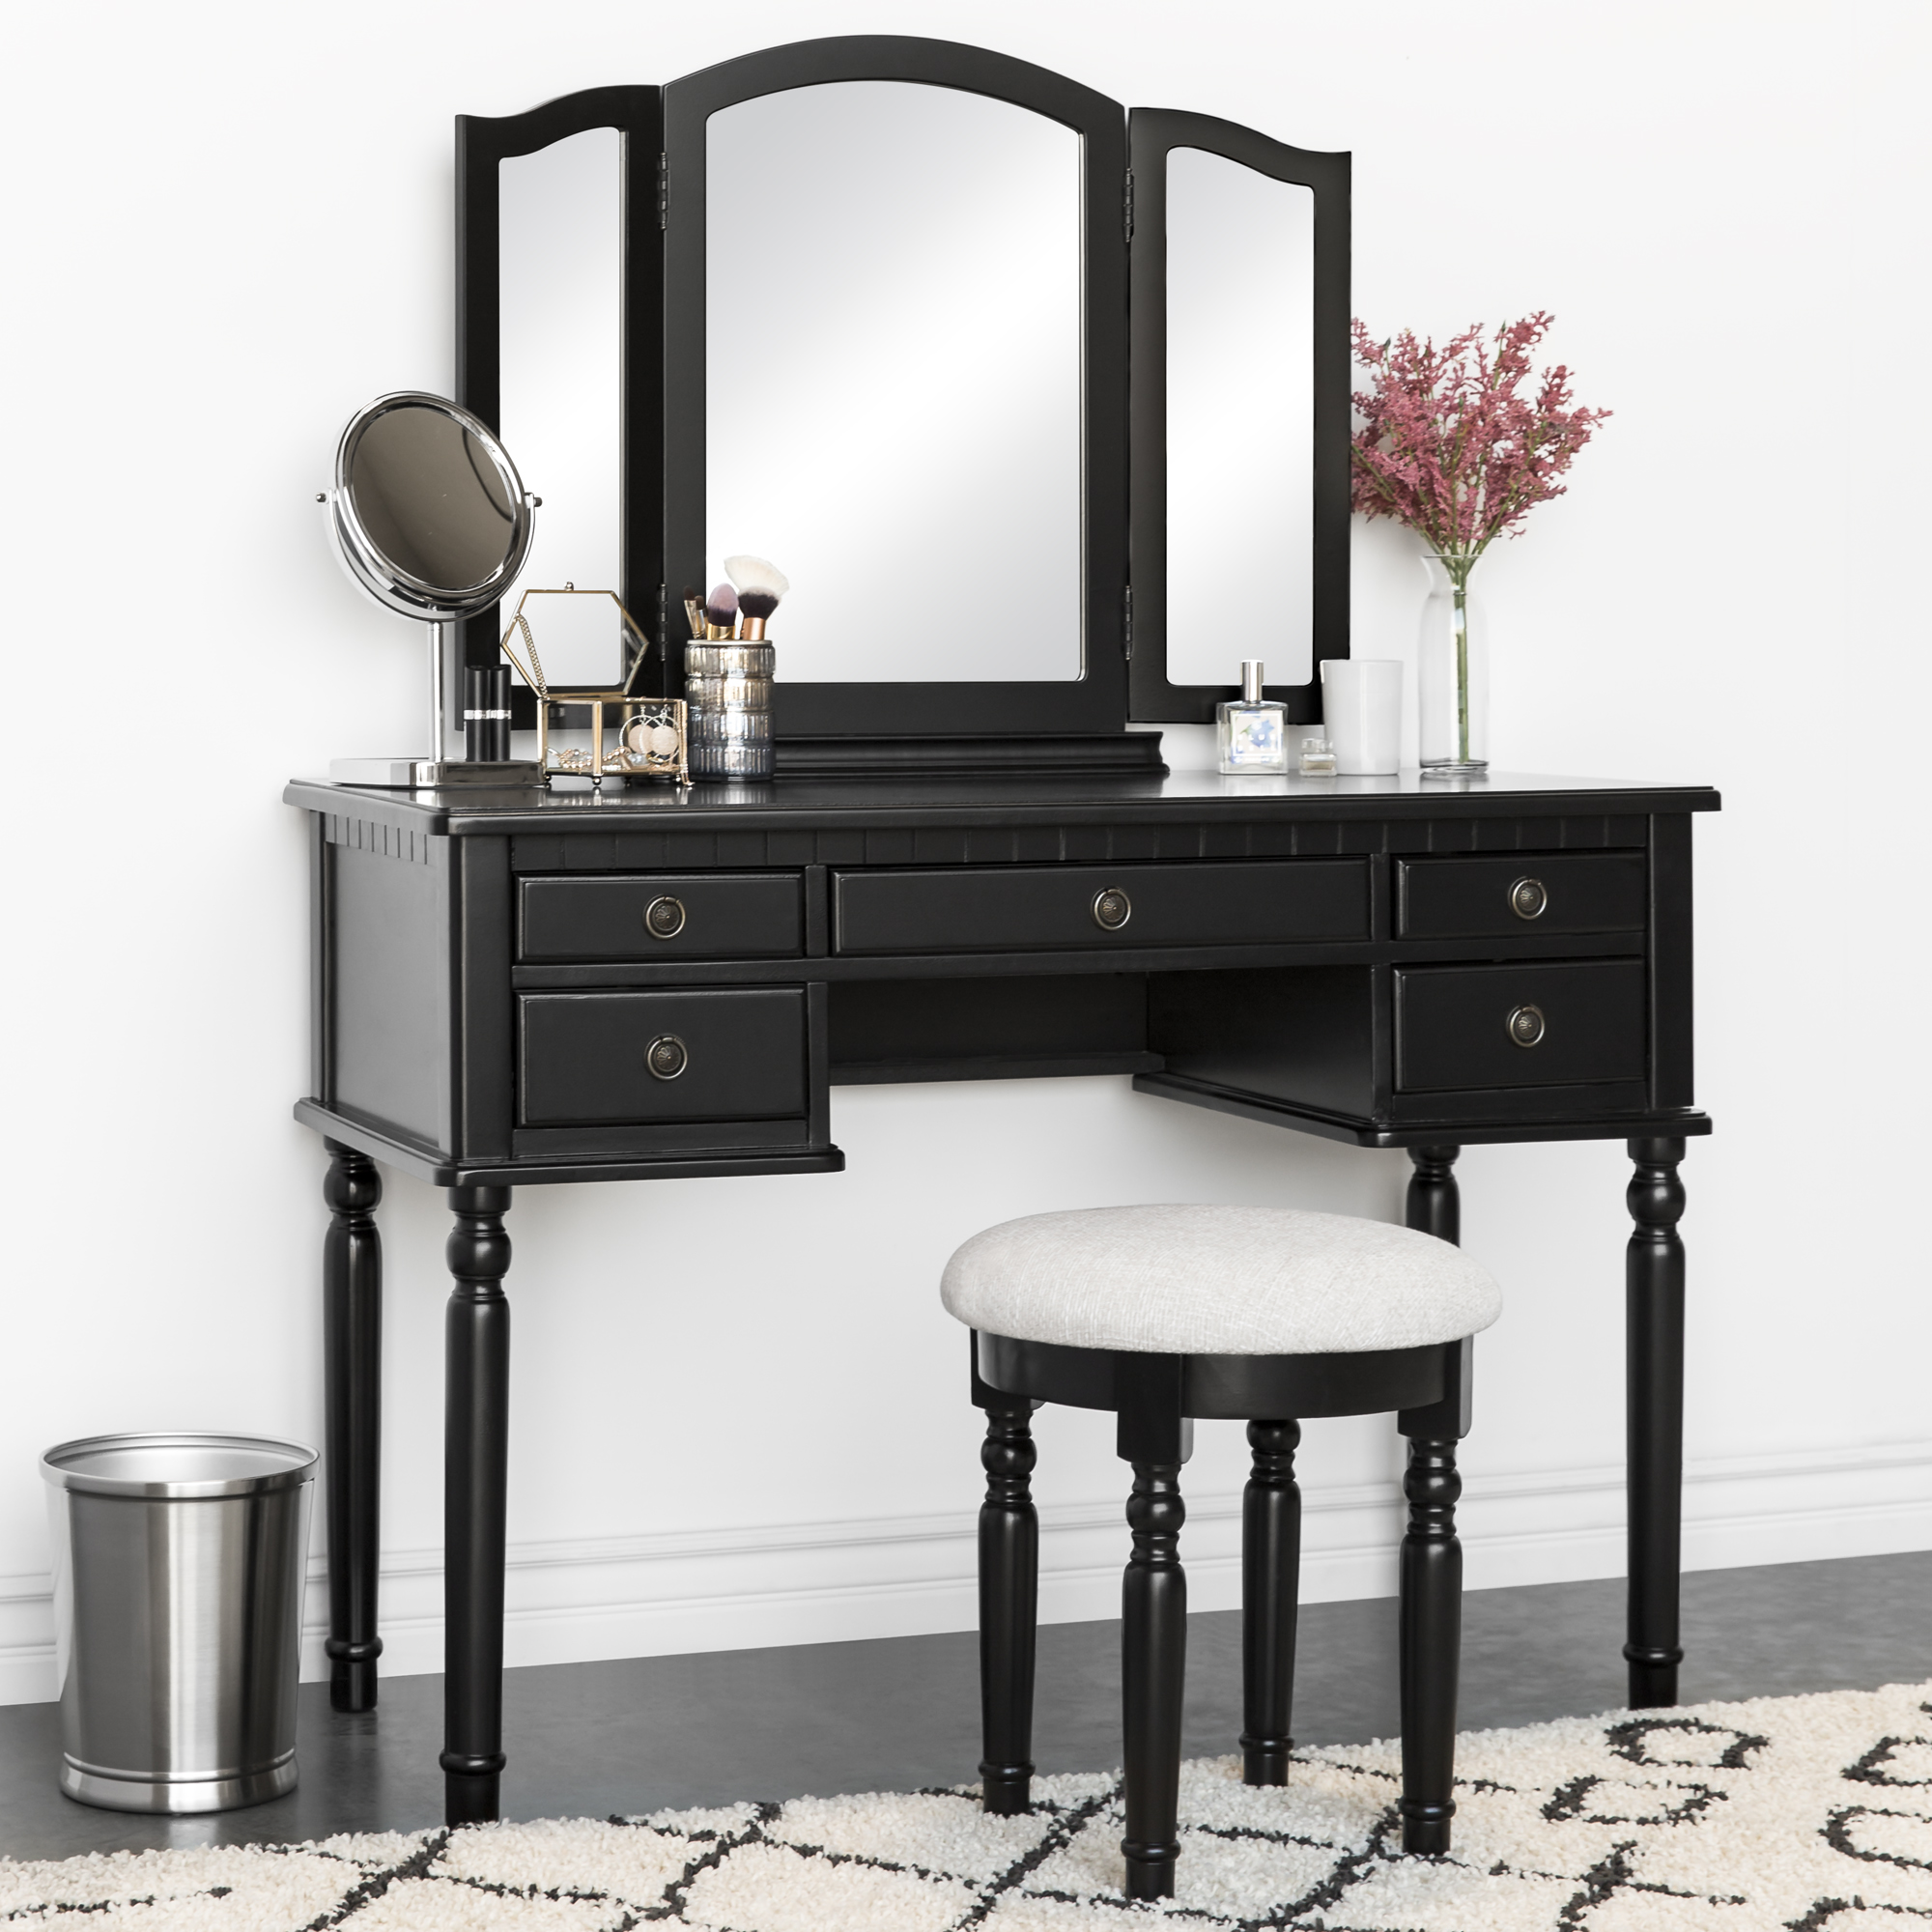 Delicieux Product Image Best Choice Products Makeup Cosmetic Beauty Vanity Dressing  Table Set W/ Tri Fold Mirror